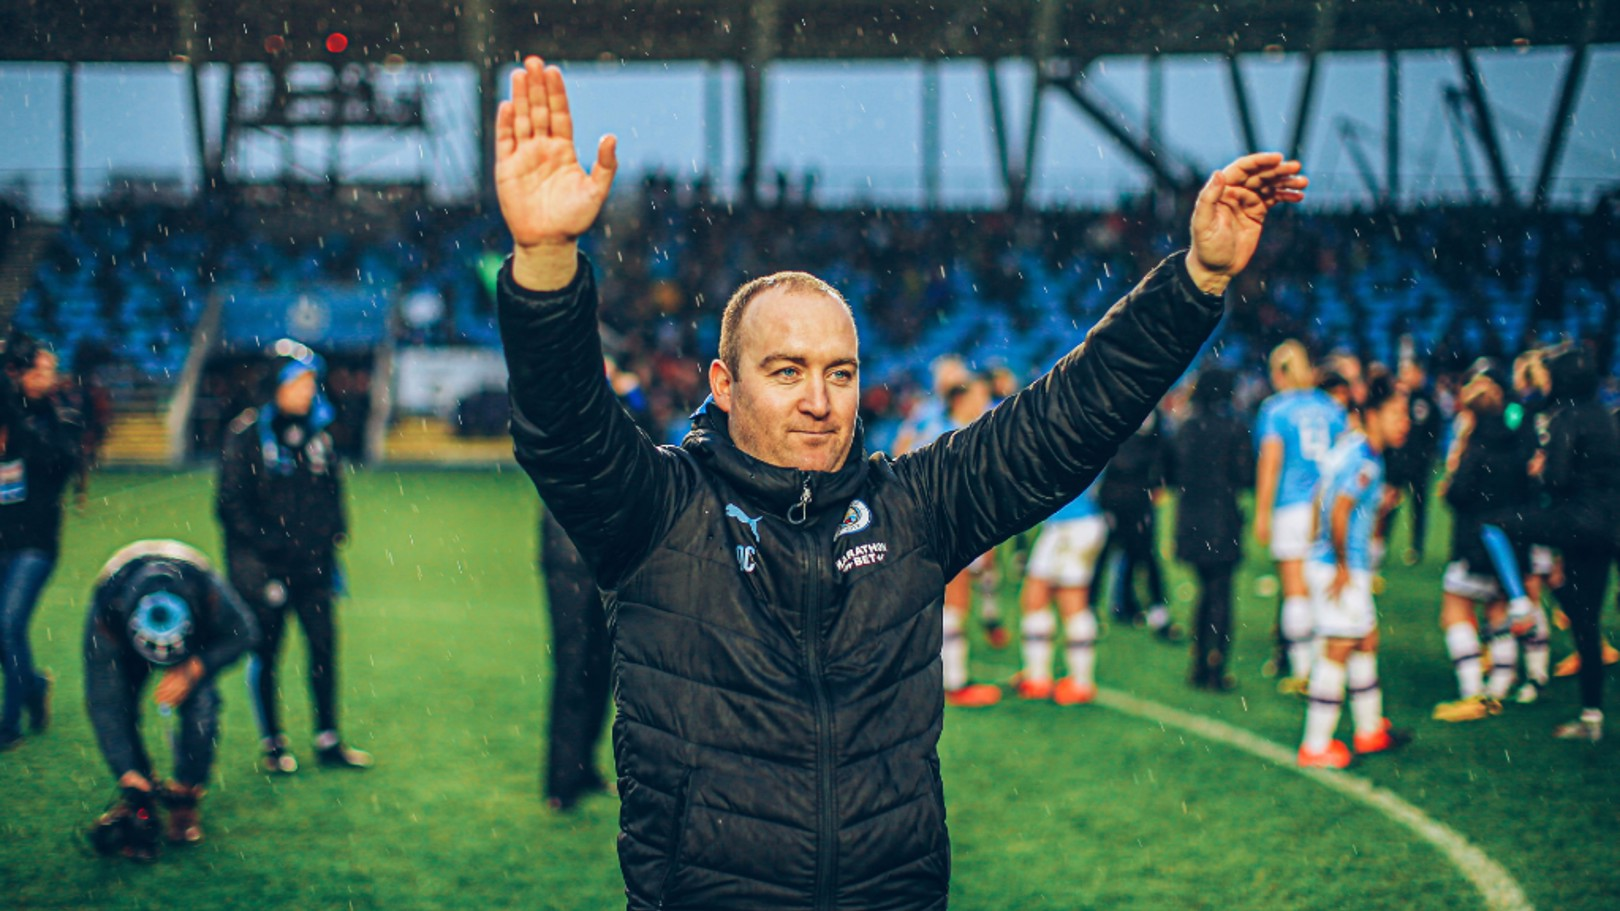 FAREWELL: Nick Cushing waves to the fans